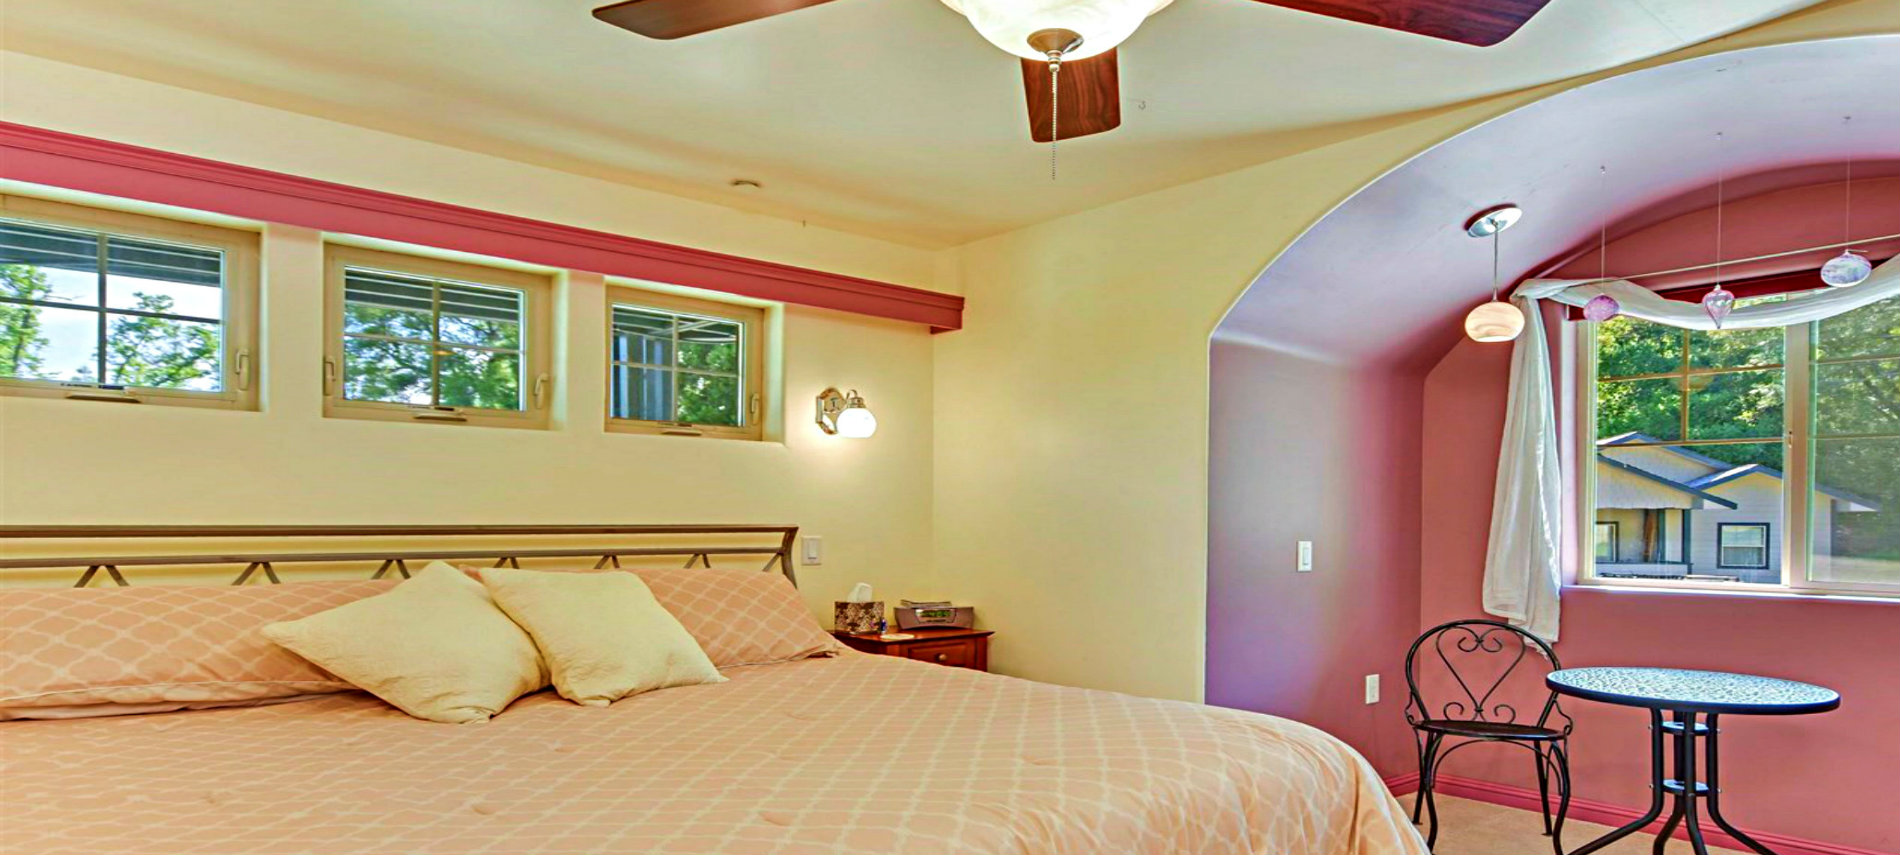 Bed with Tan Spread and Pillows at Head of Bed and a Lace Draping from Ceiling to Corners of Bed